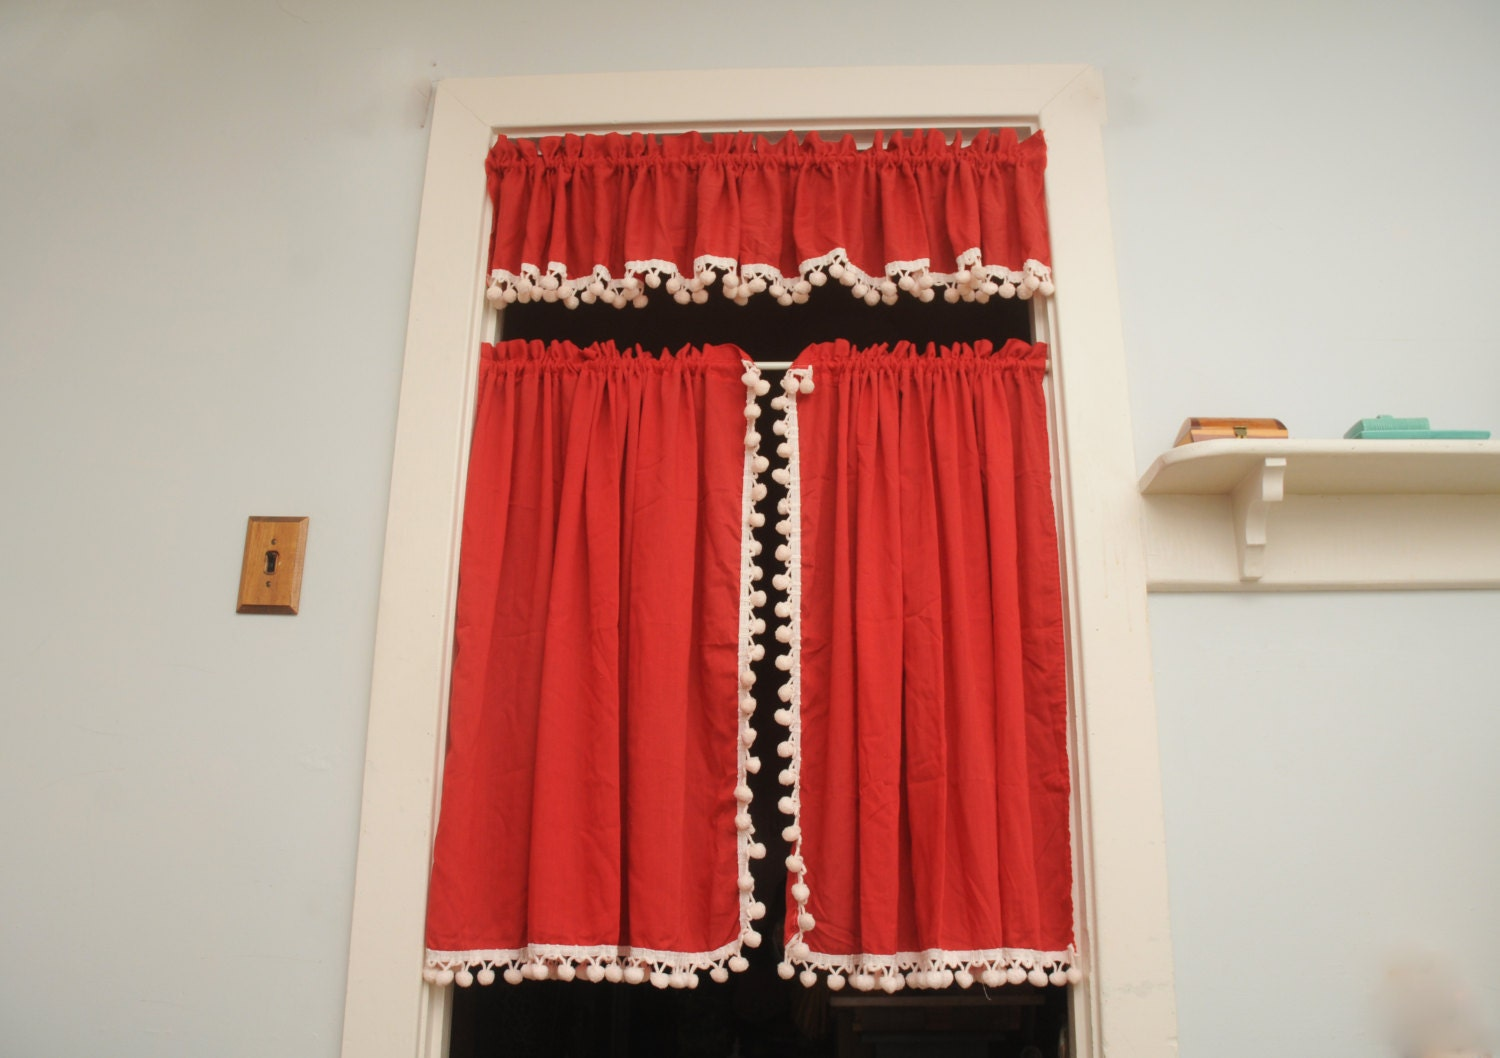 Vintage Cafe Curtains With Valance Red White Pom Poms Pair